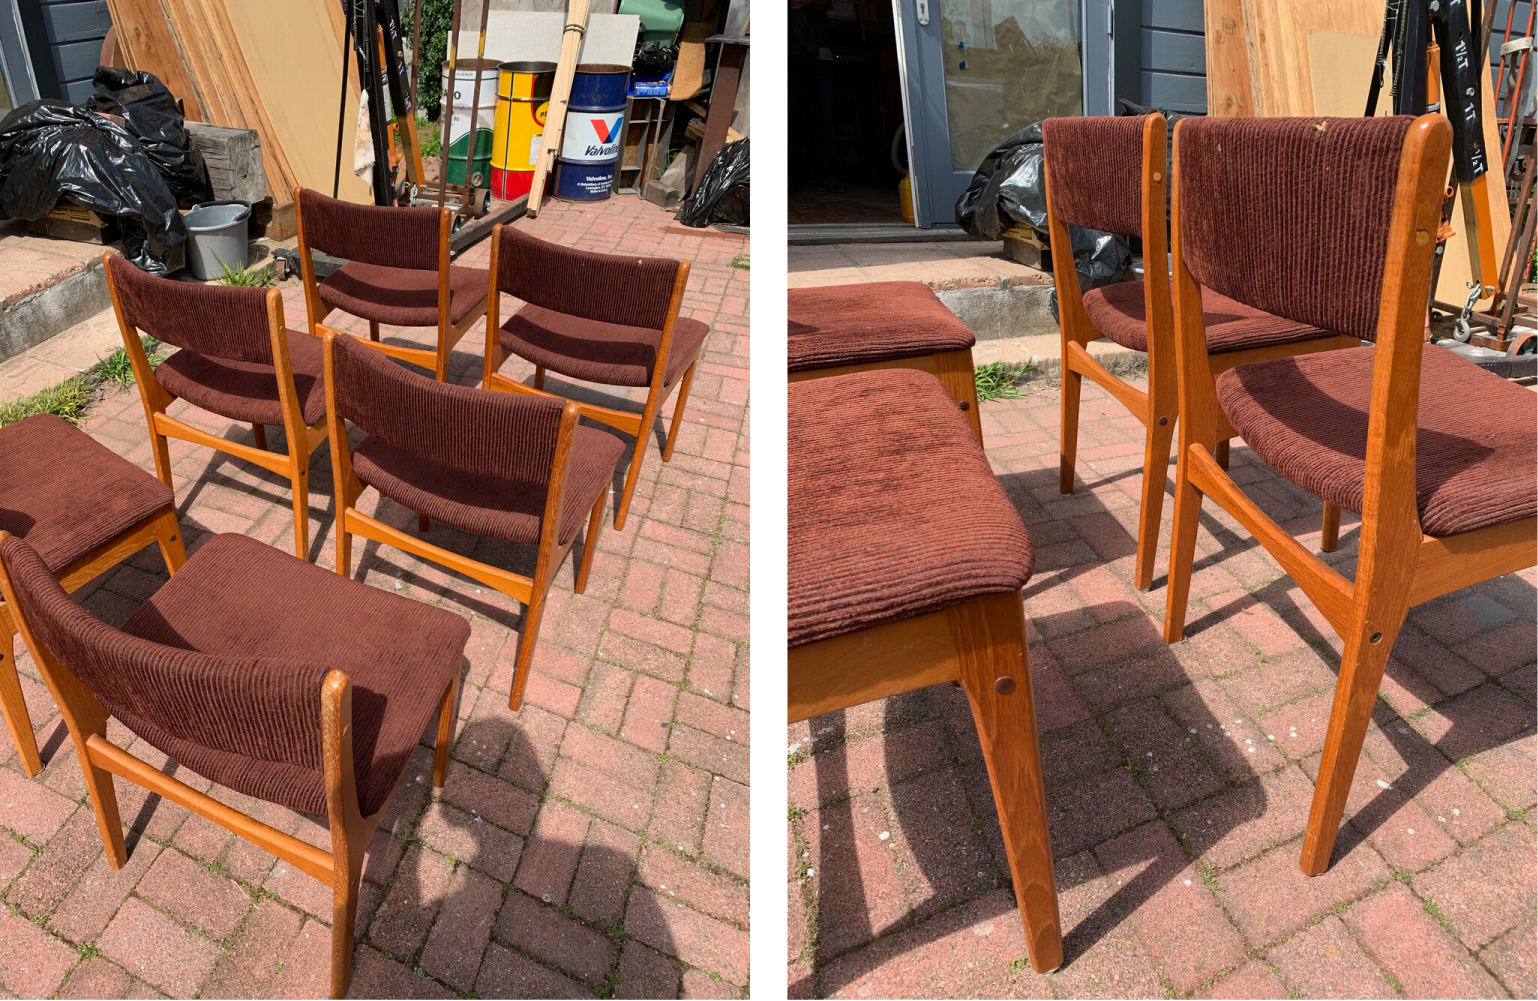 Photos of six used mid-century dining chairs with ratty burgundy upholstery